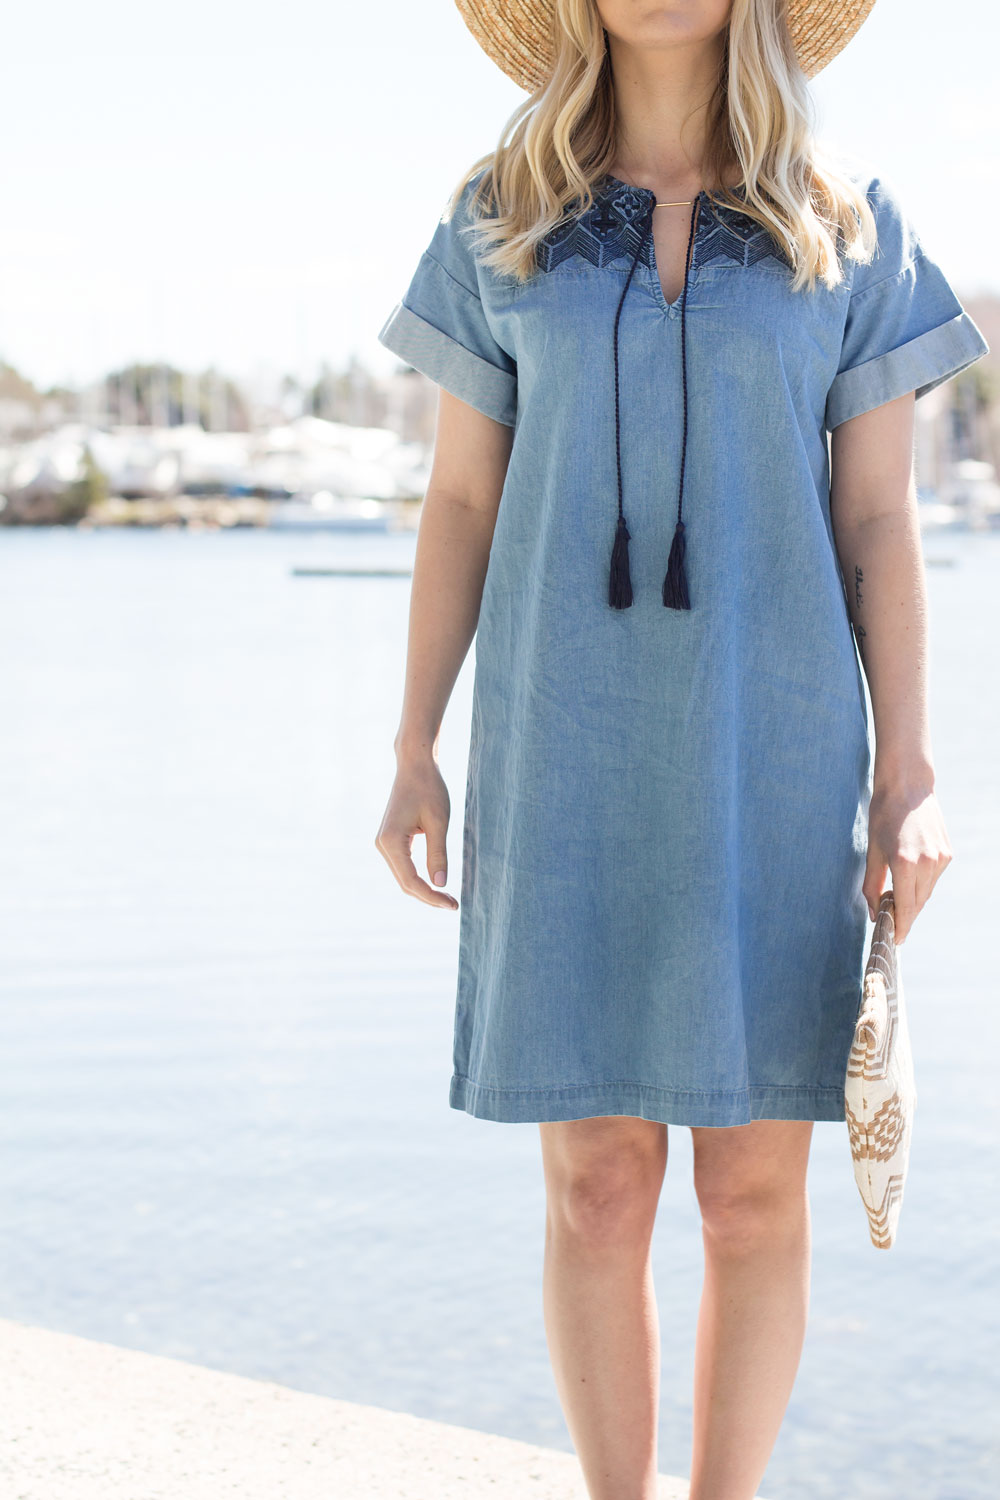 embroidered-chambray-3